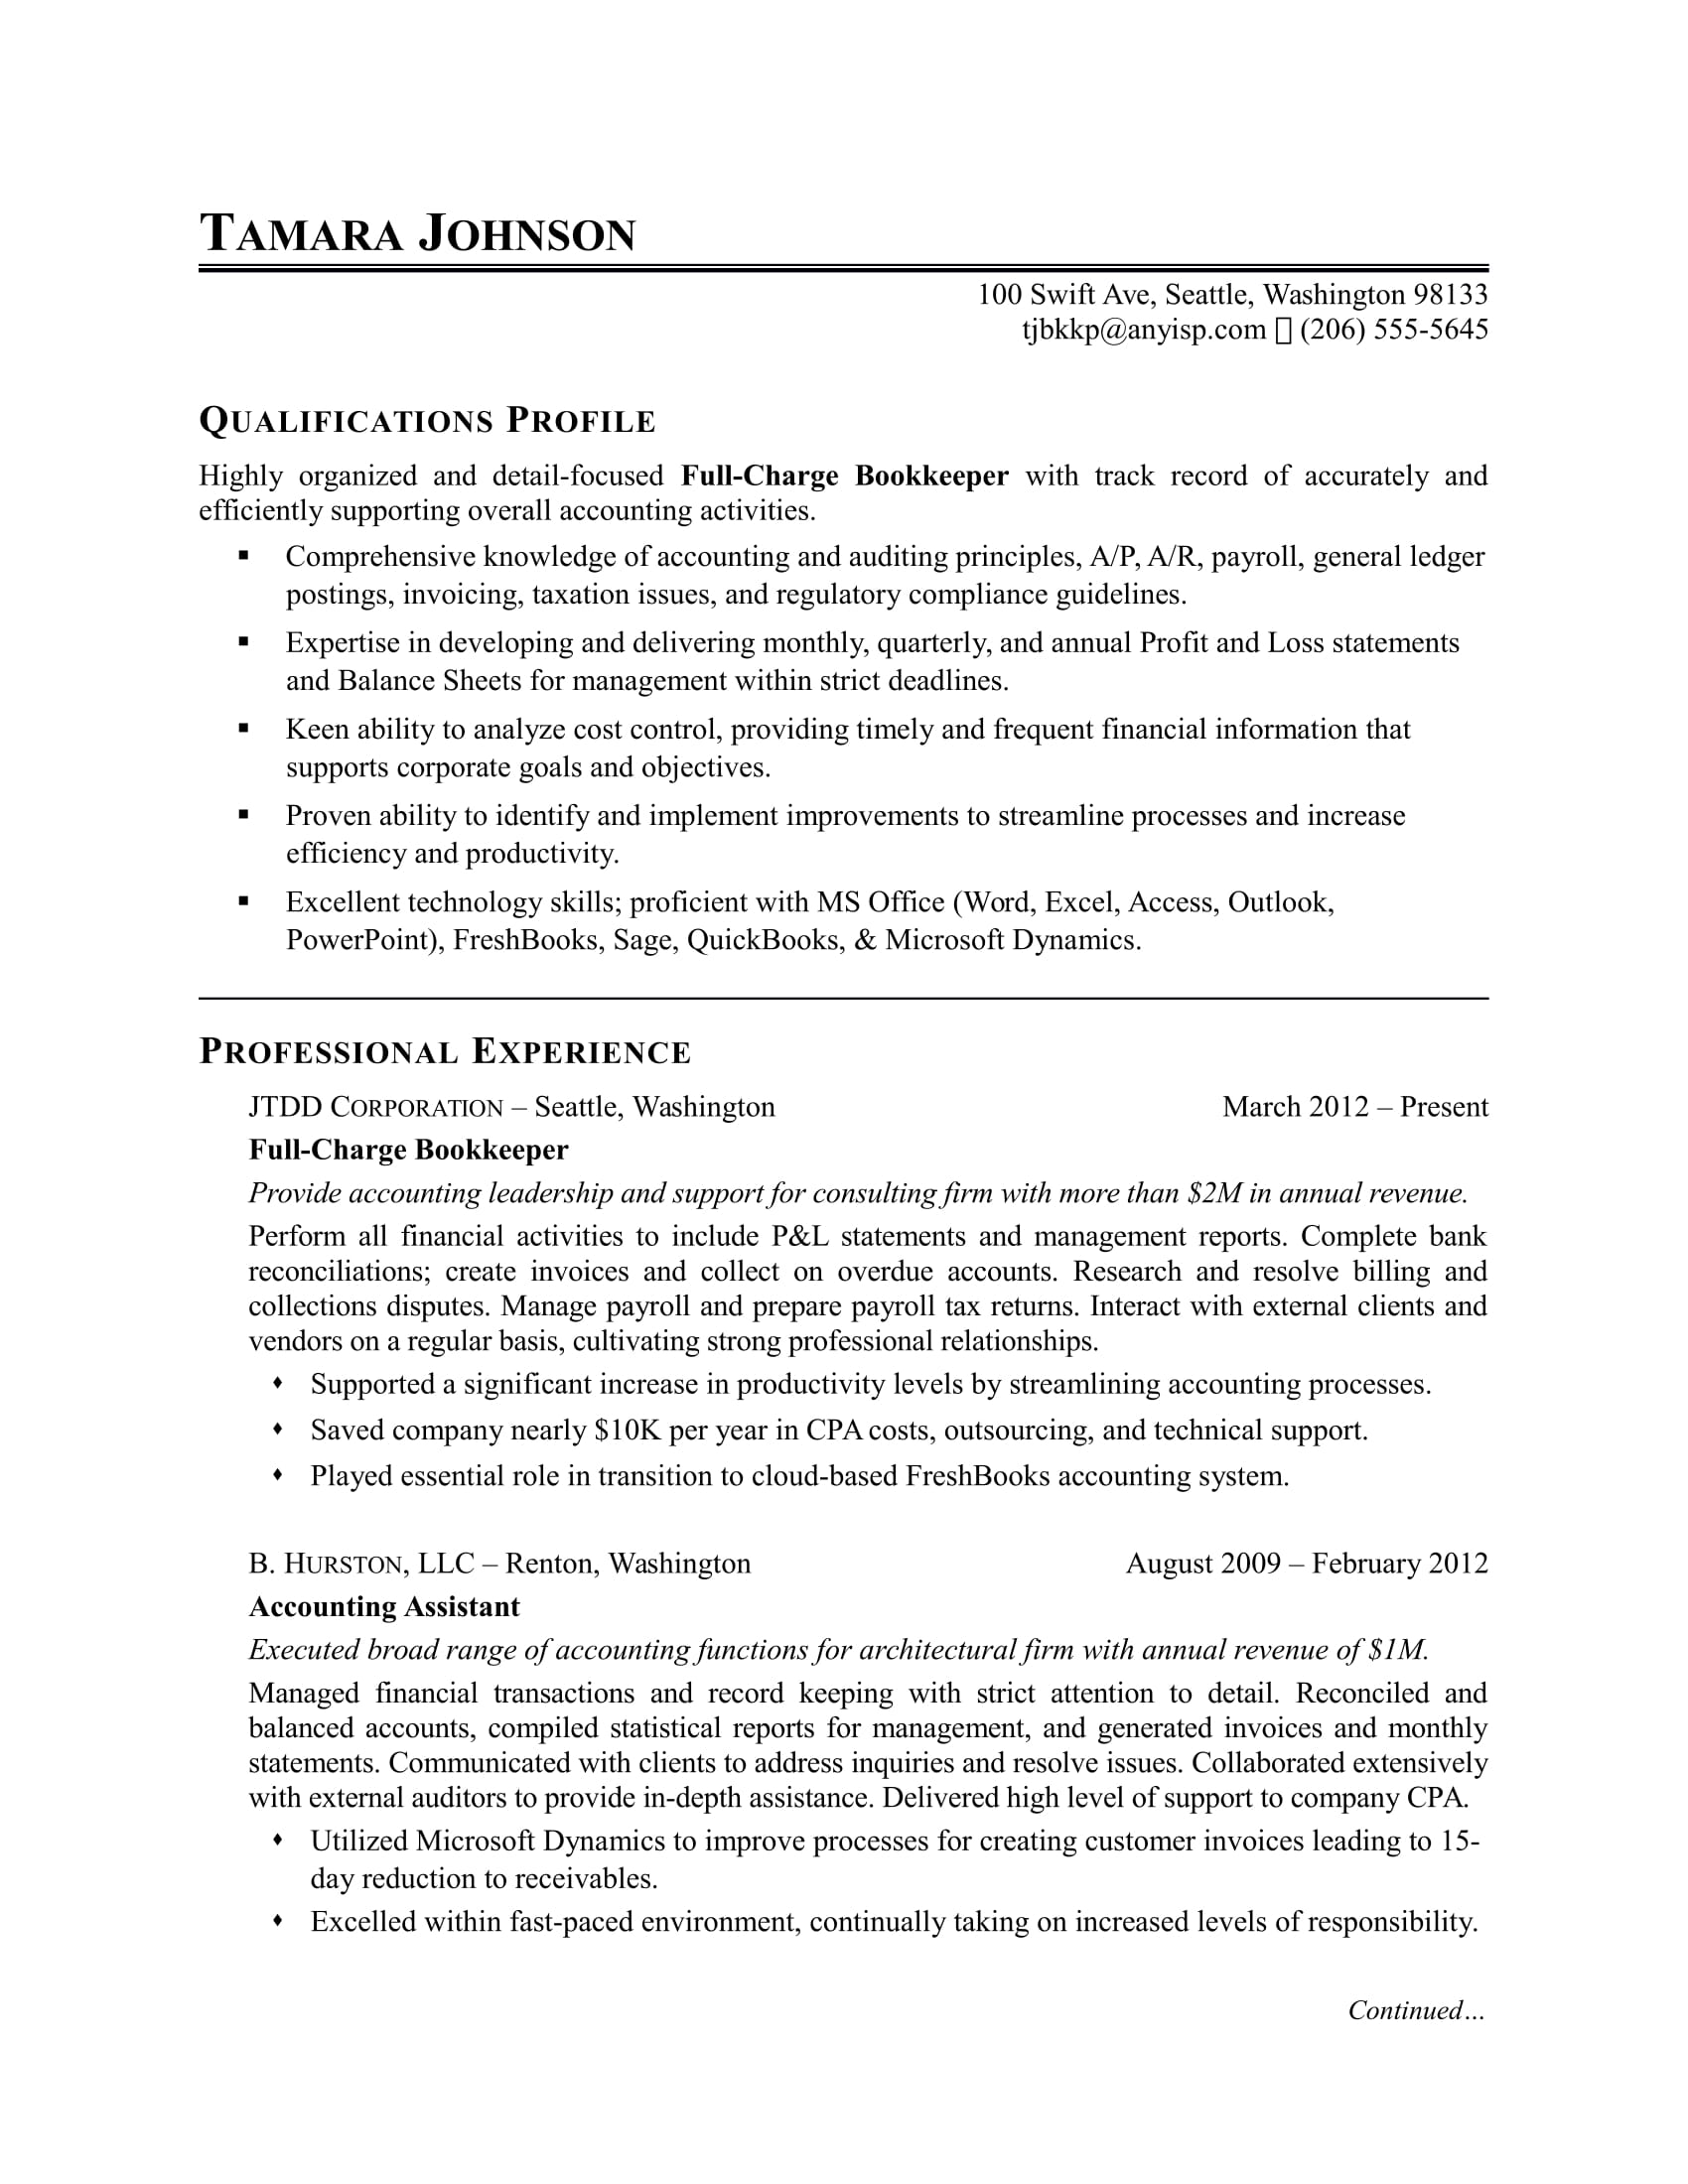 sample resume for a bookkeeper - Bookkeeper Resume Sample